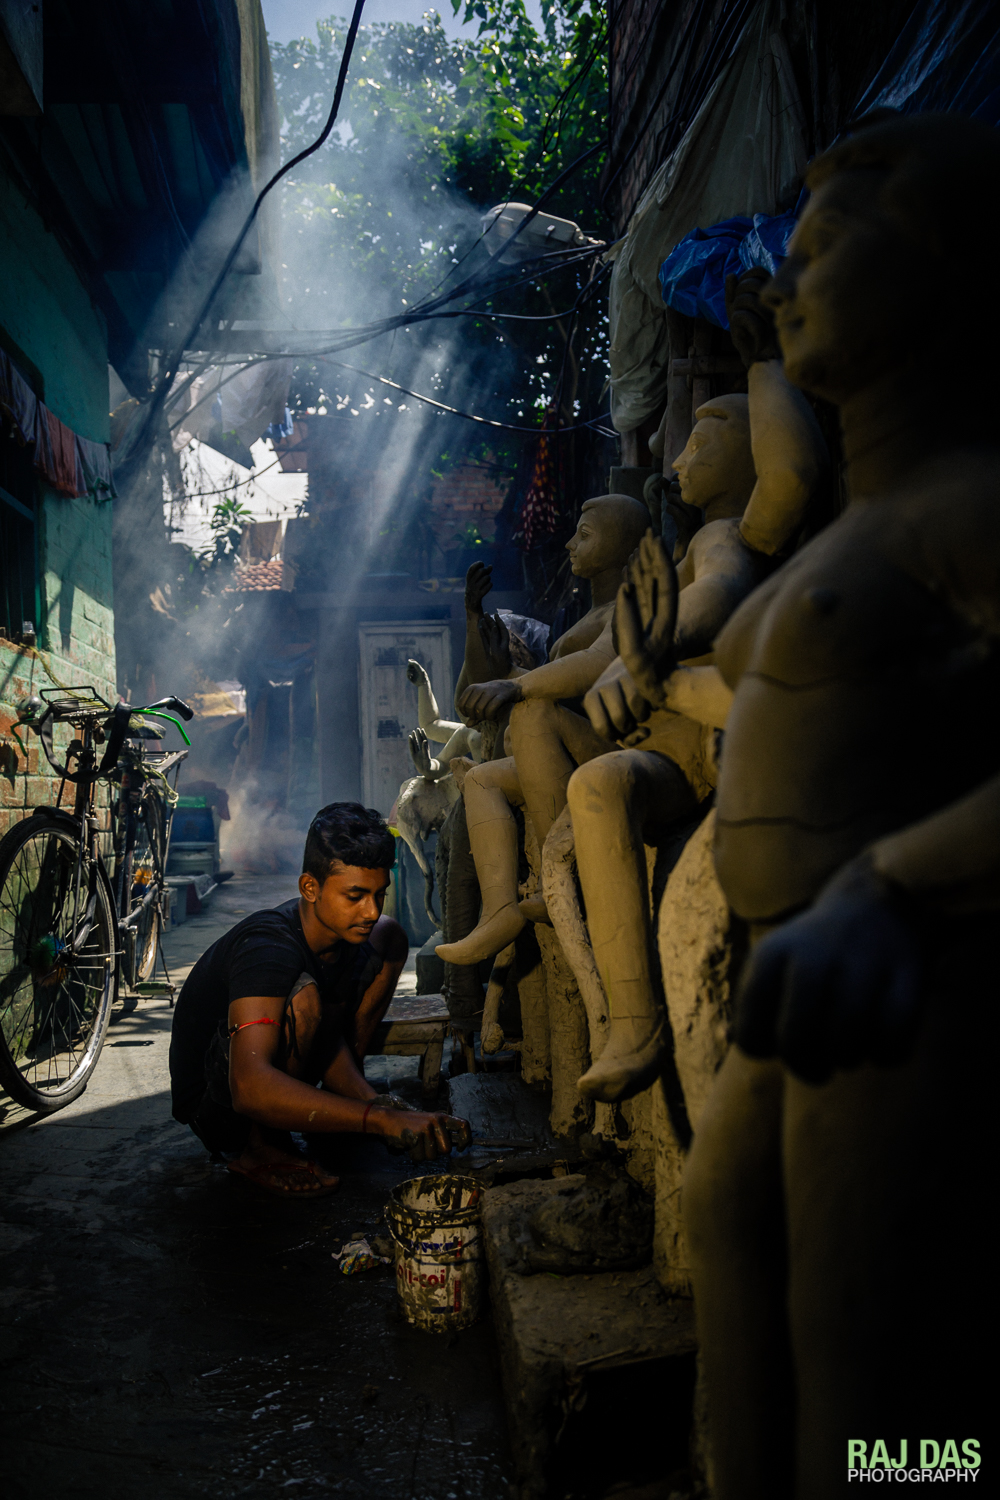 A young artisan applies a fresh coat to prevent the clay idols from cracking as they dry